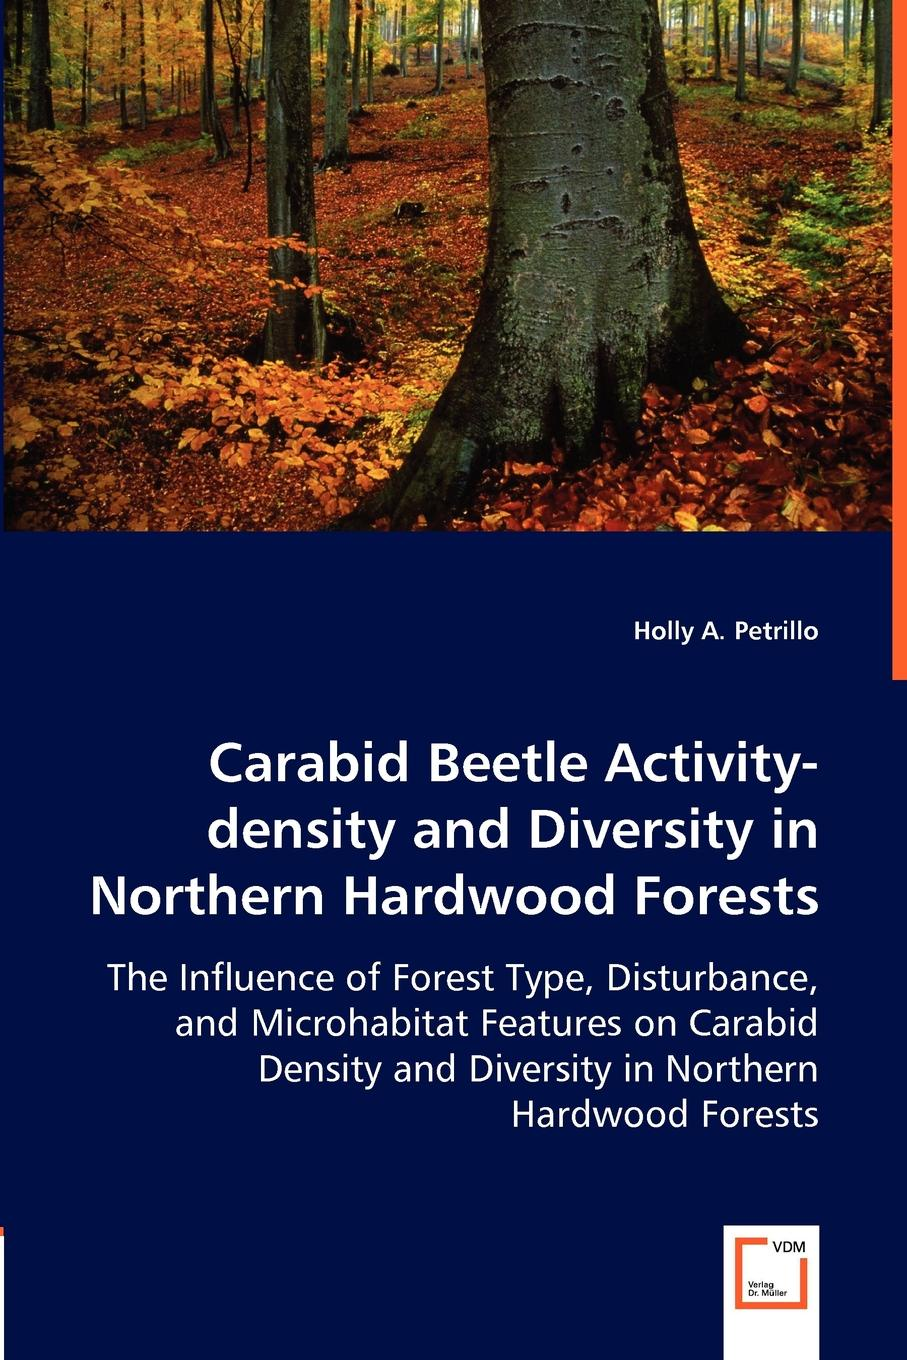 Holly A. Petrillo Carabid Beetle Activity-density and Diversity in Northern Hardwood Forests